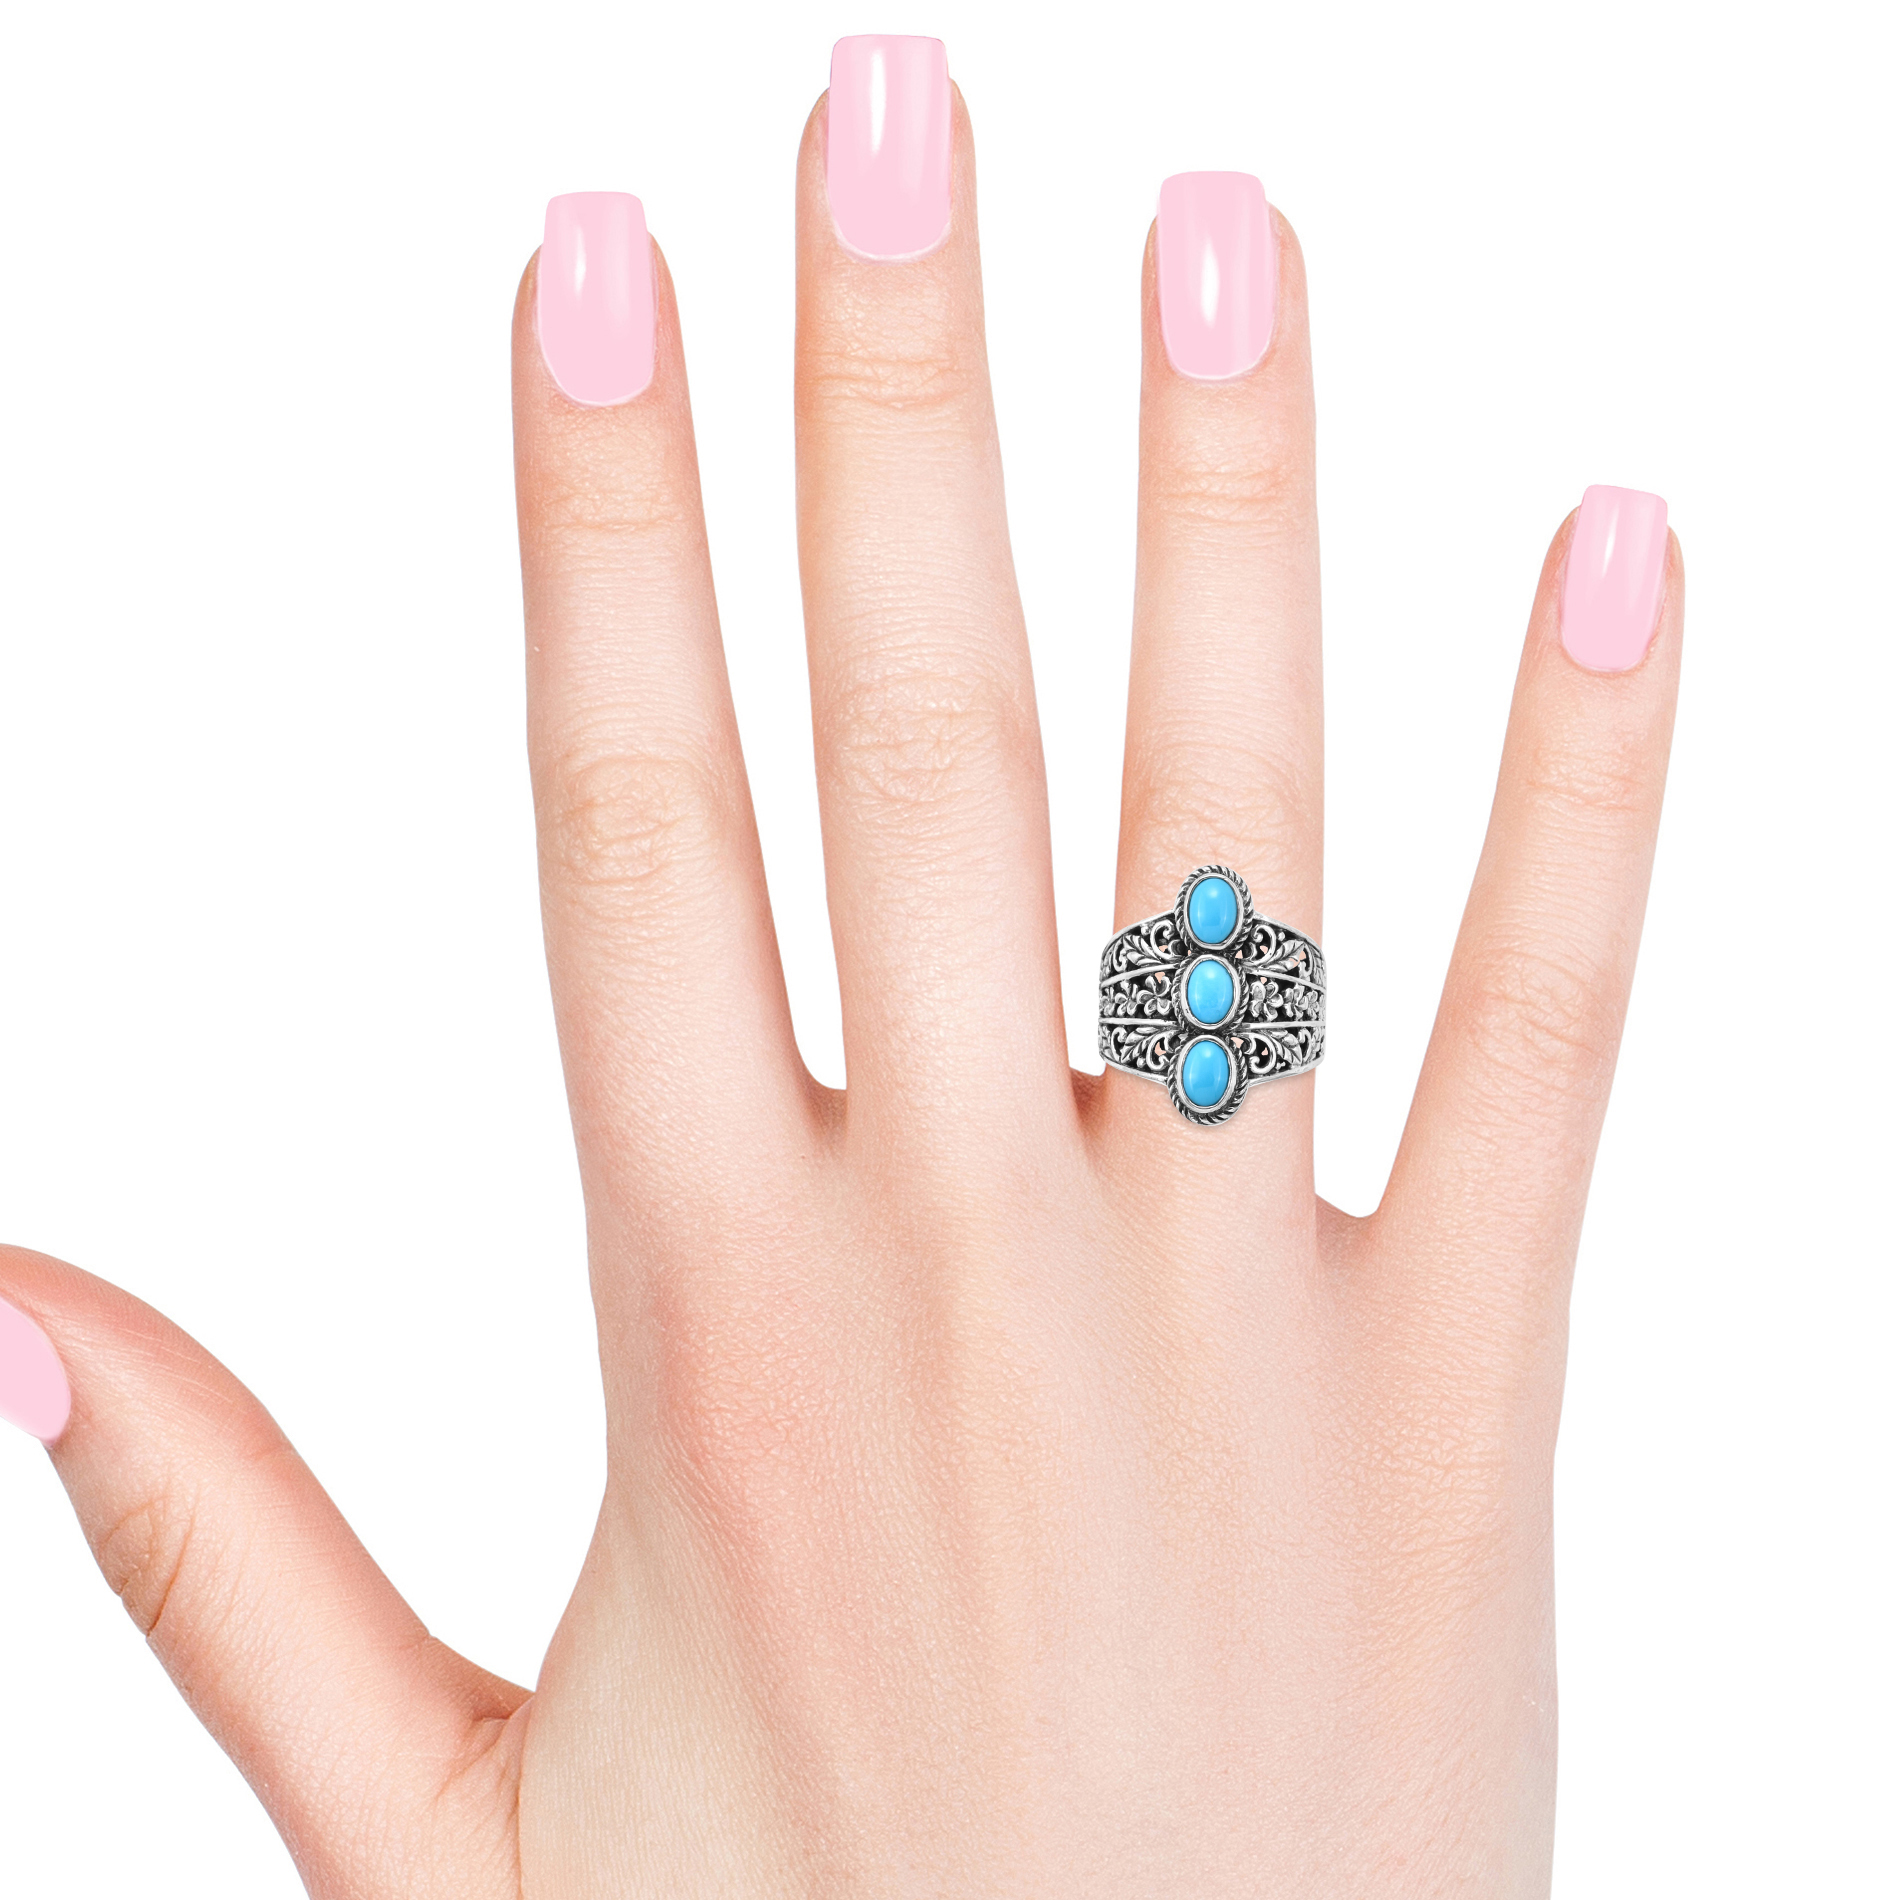 Bali Legacy Arizona Sleeping Beauty Turquoise Ring in Sterling Silver (Size 9.0) 2.28 ctw